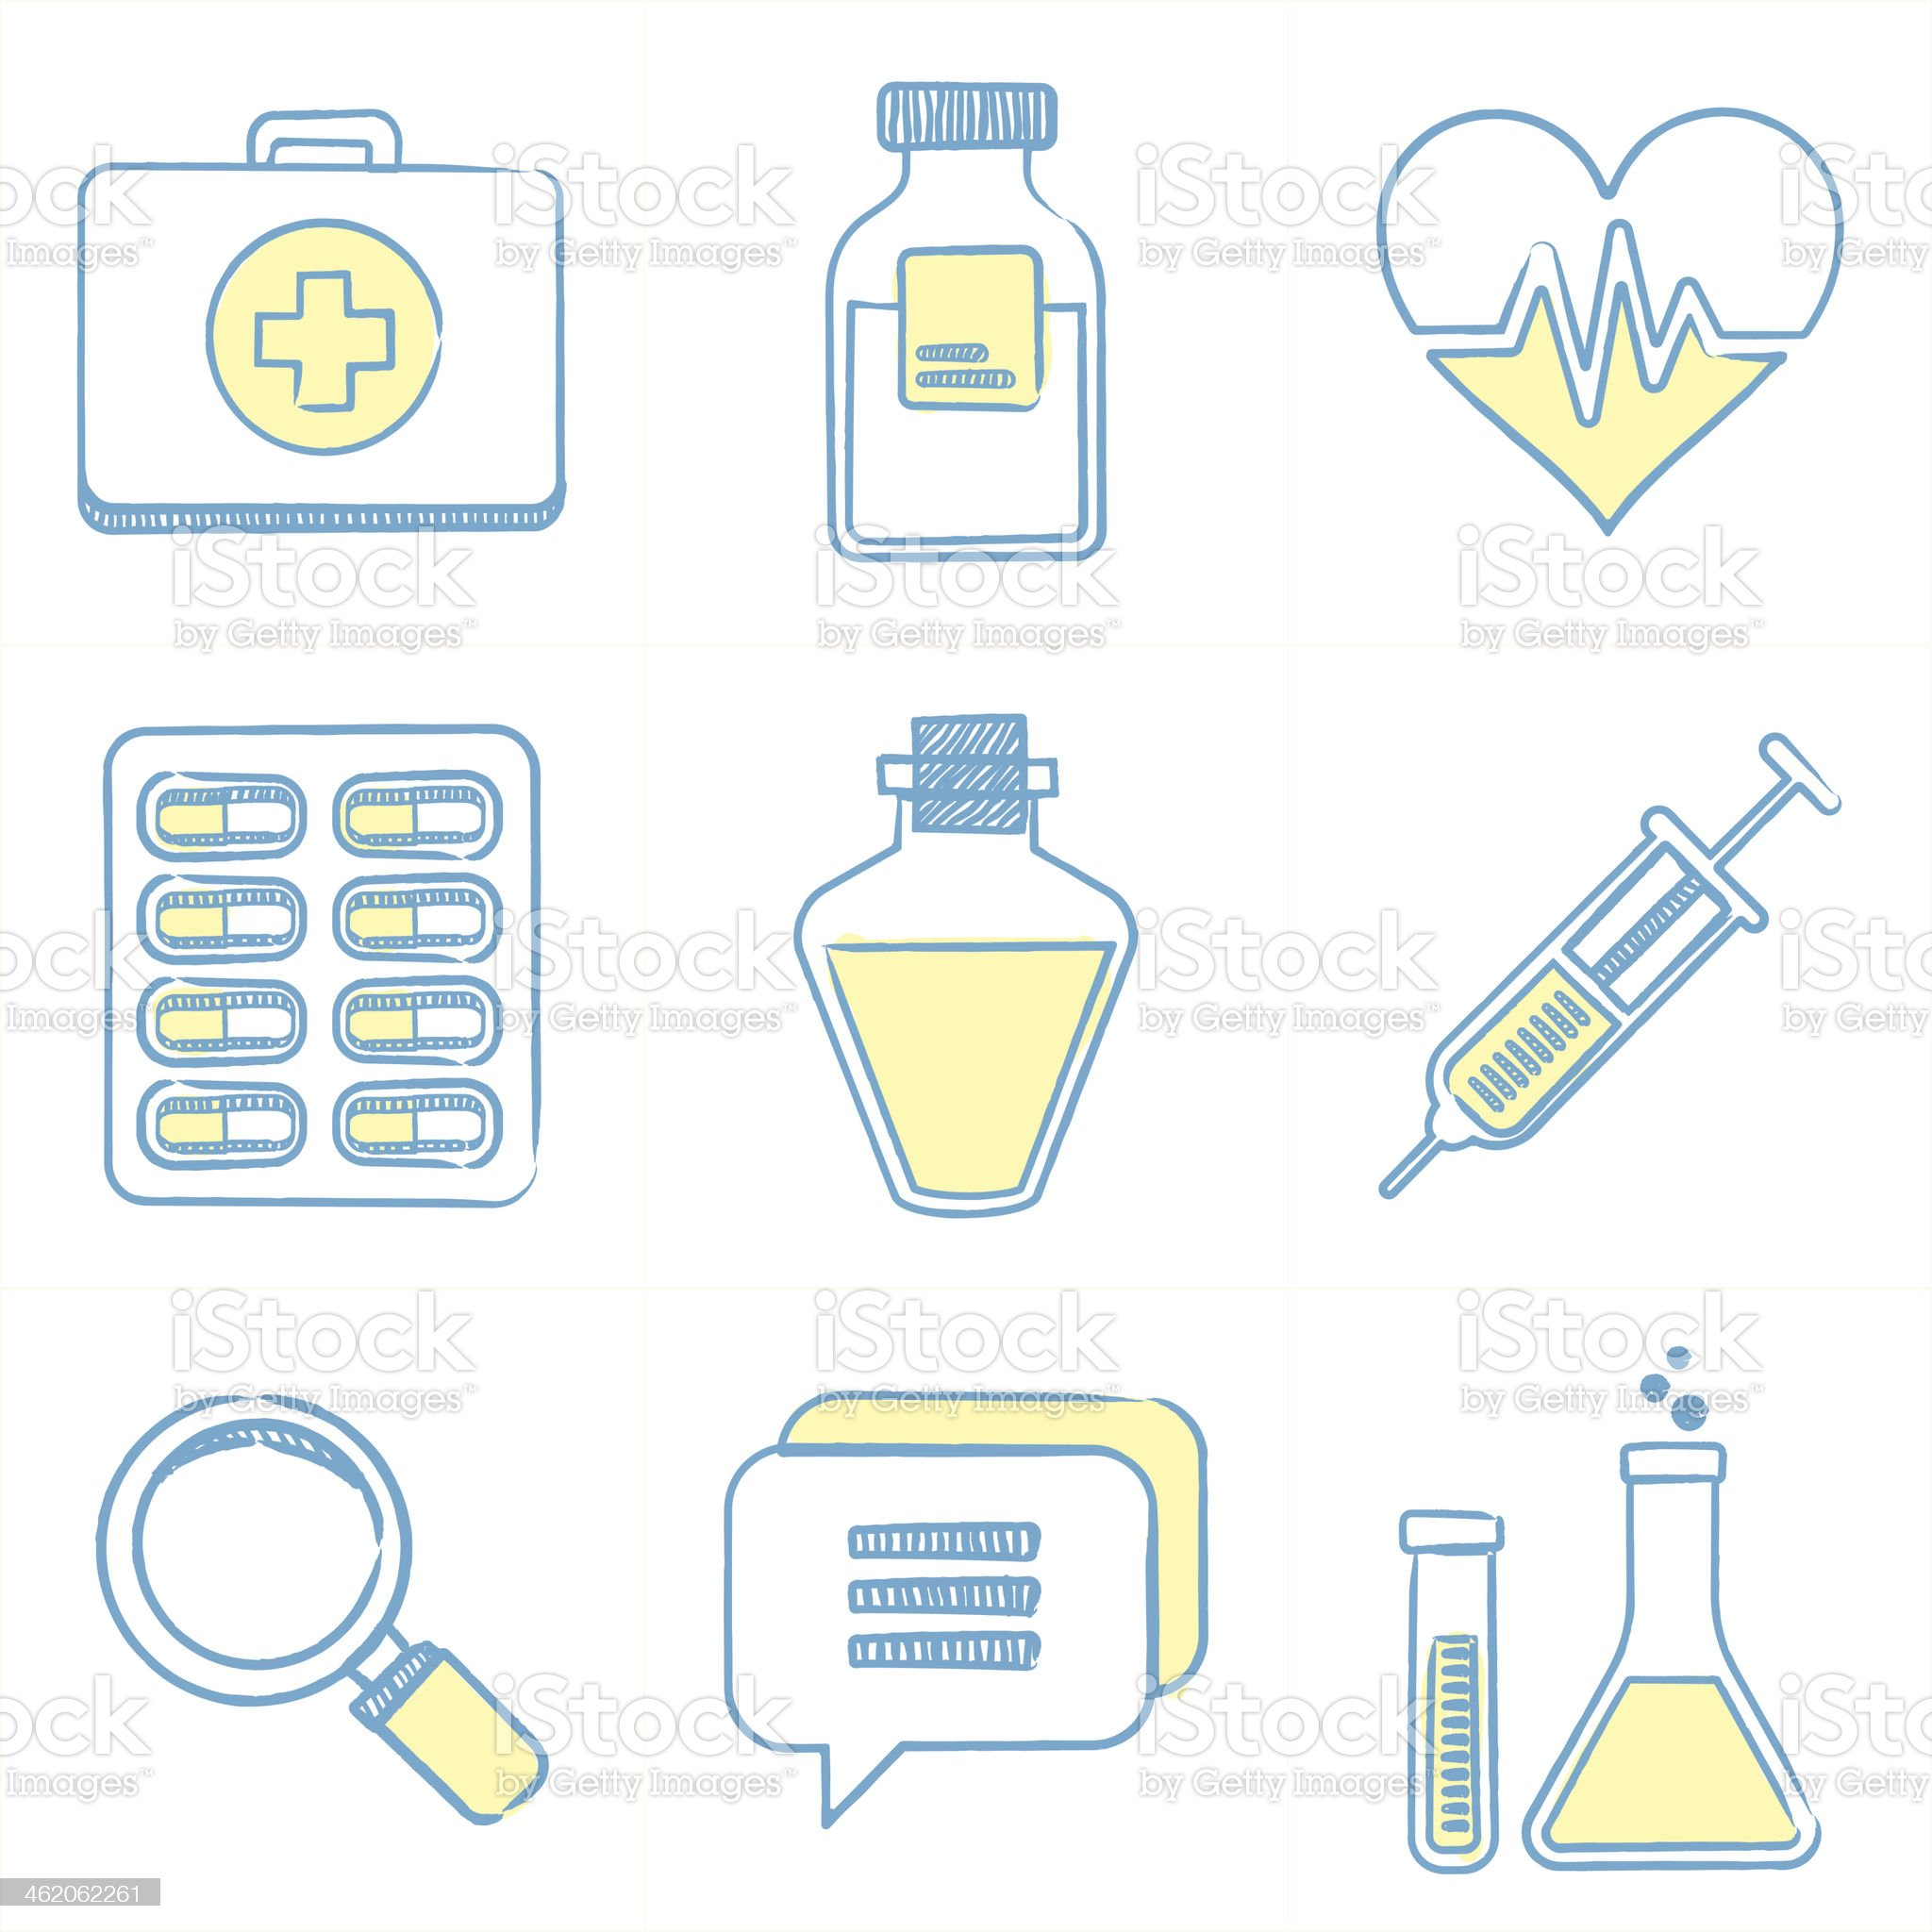 Health Care Icons royalty-free stock vector art